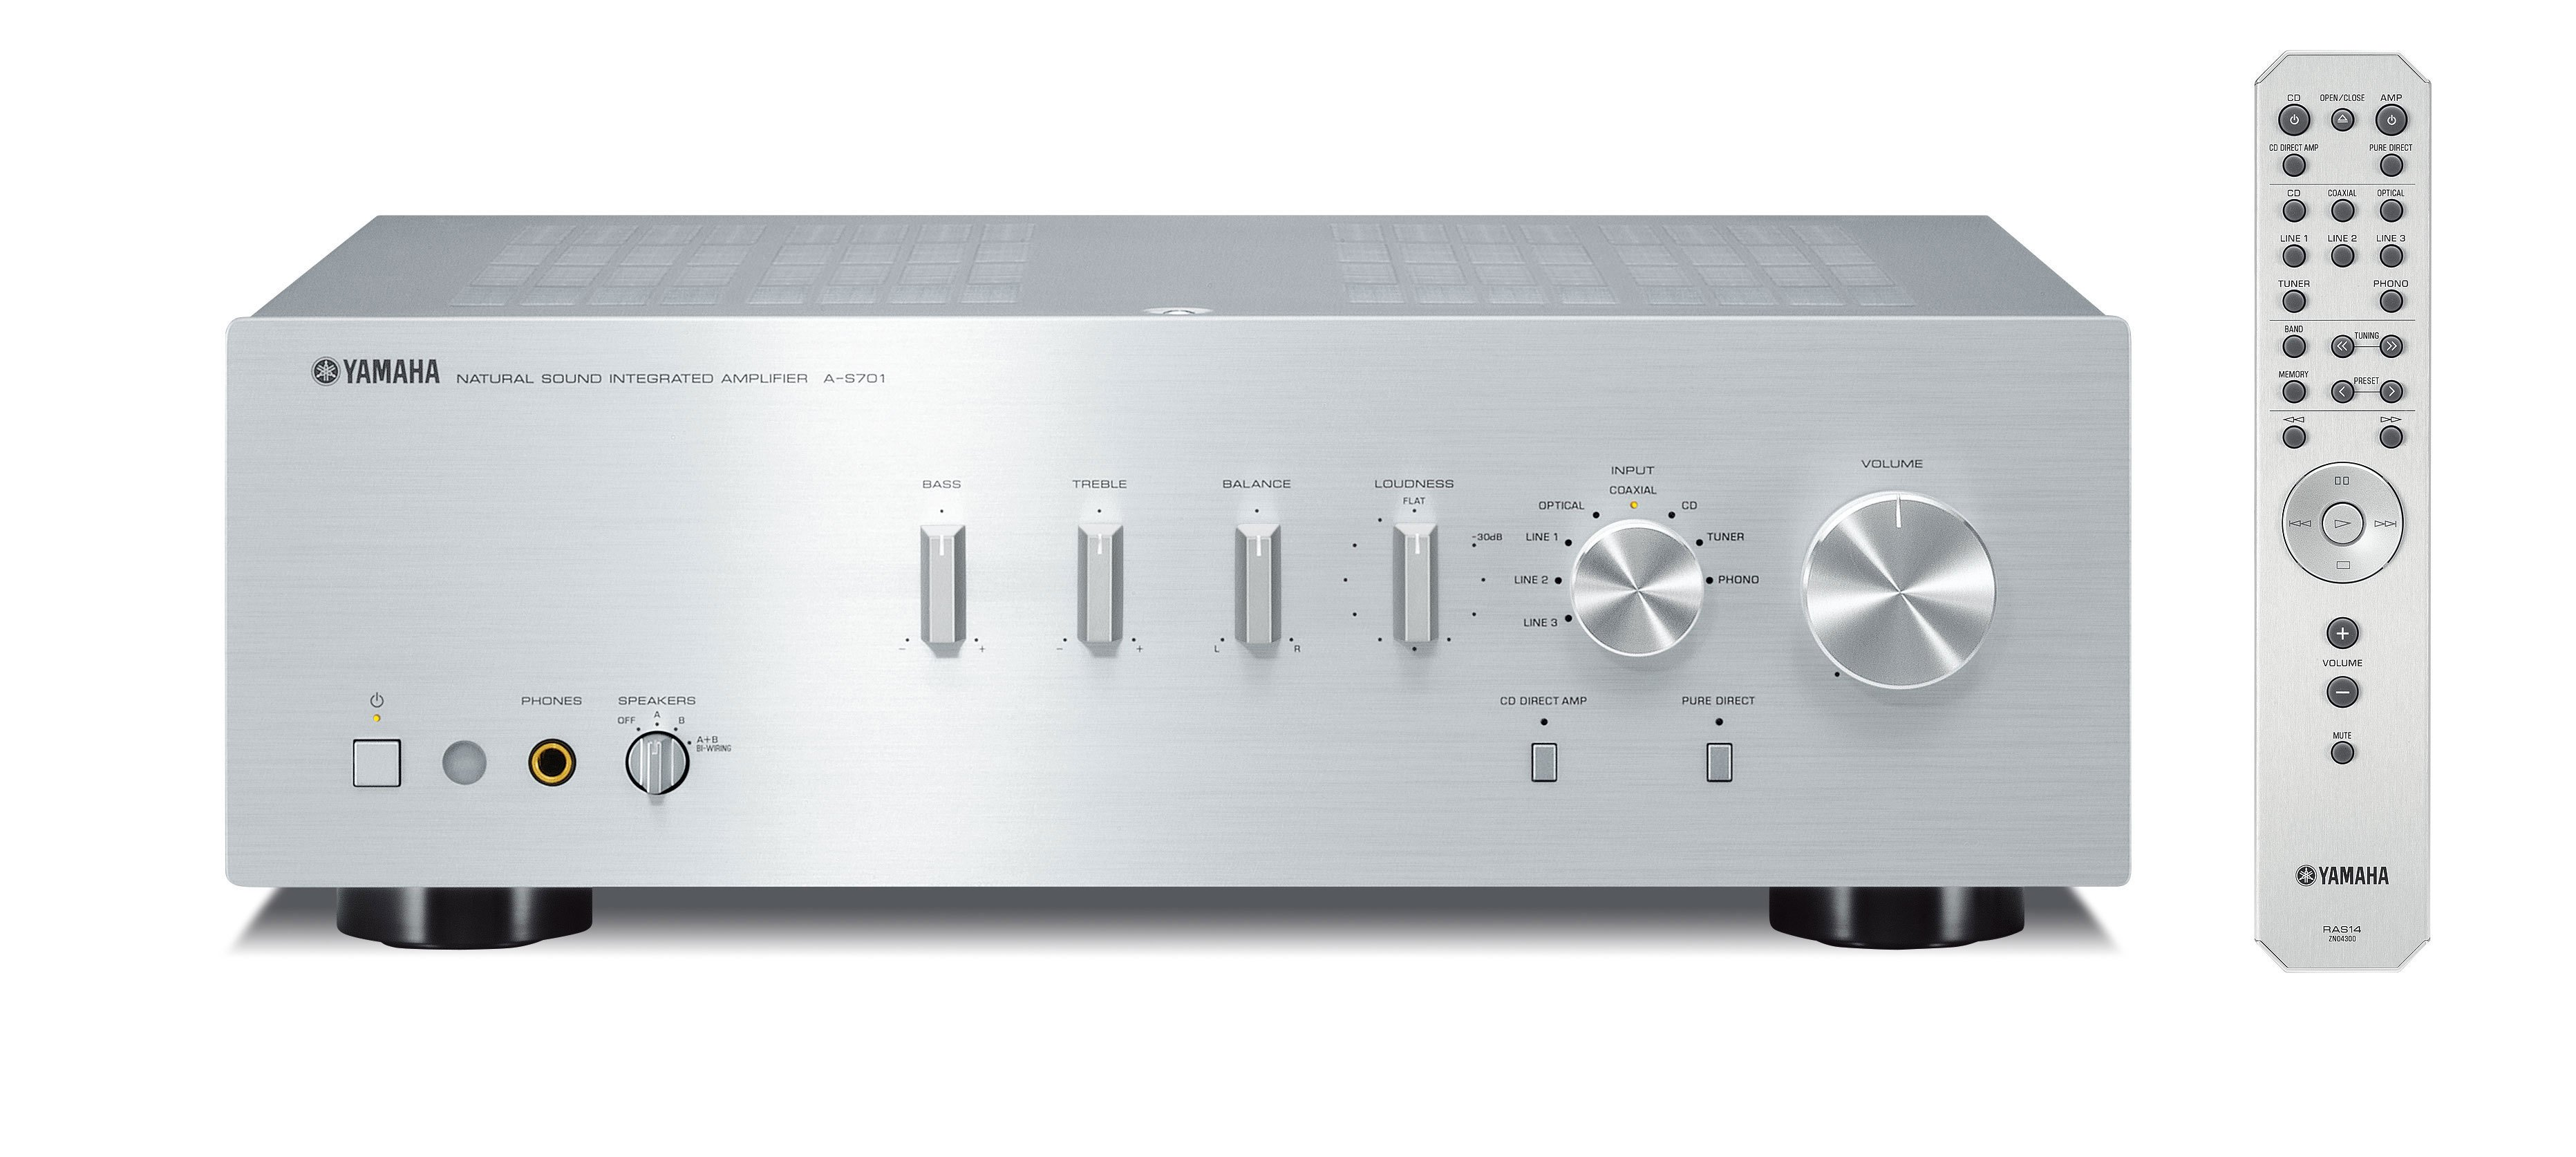 Onkyo Vs Yamaha Integrated Amplifier